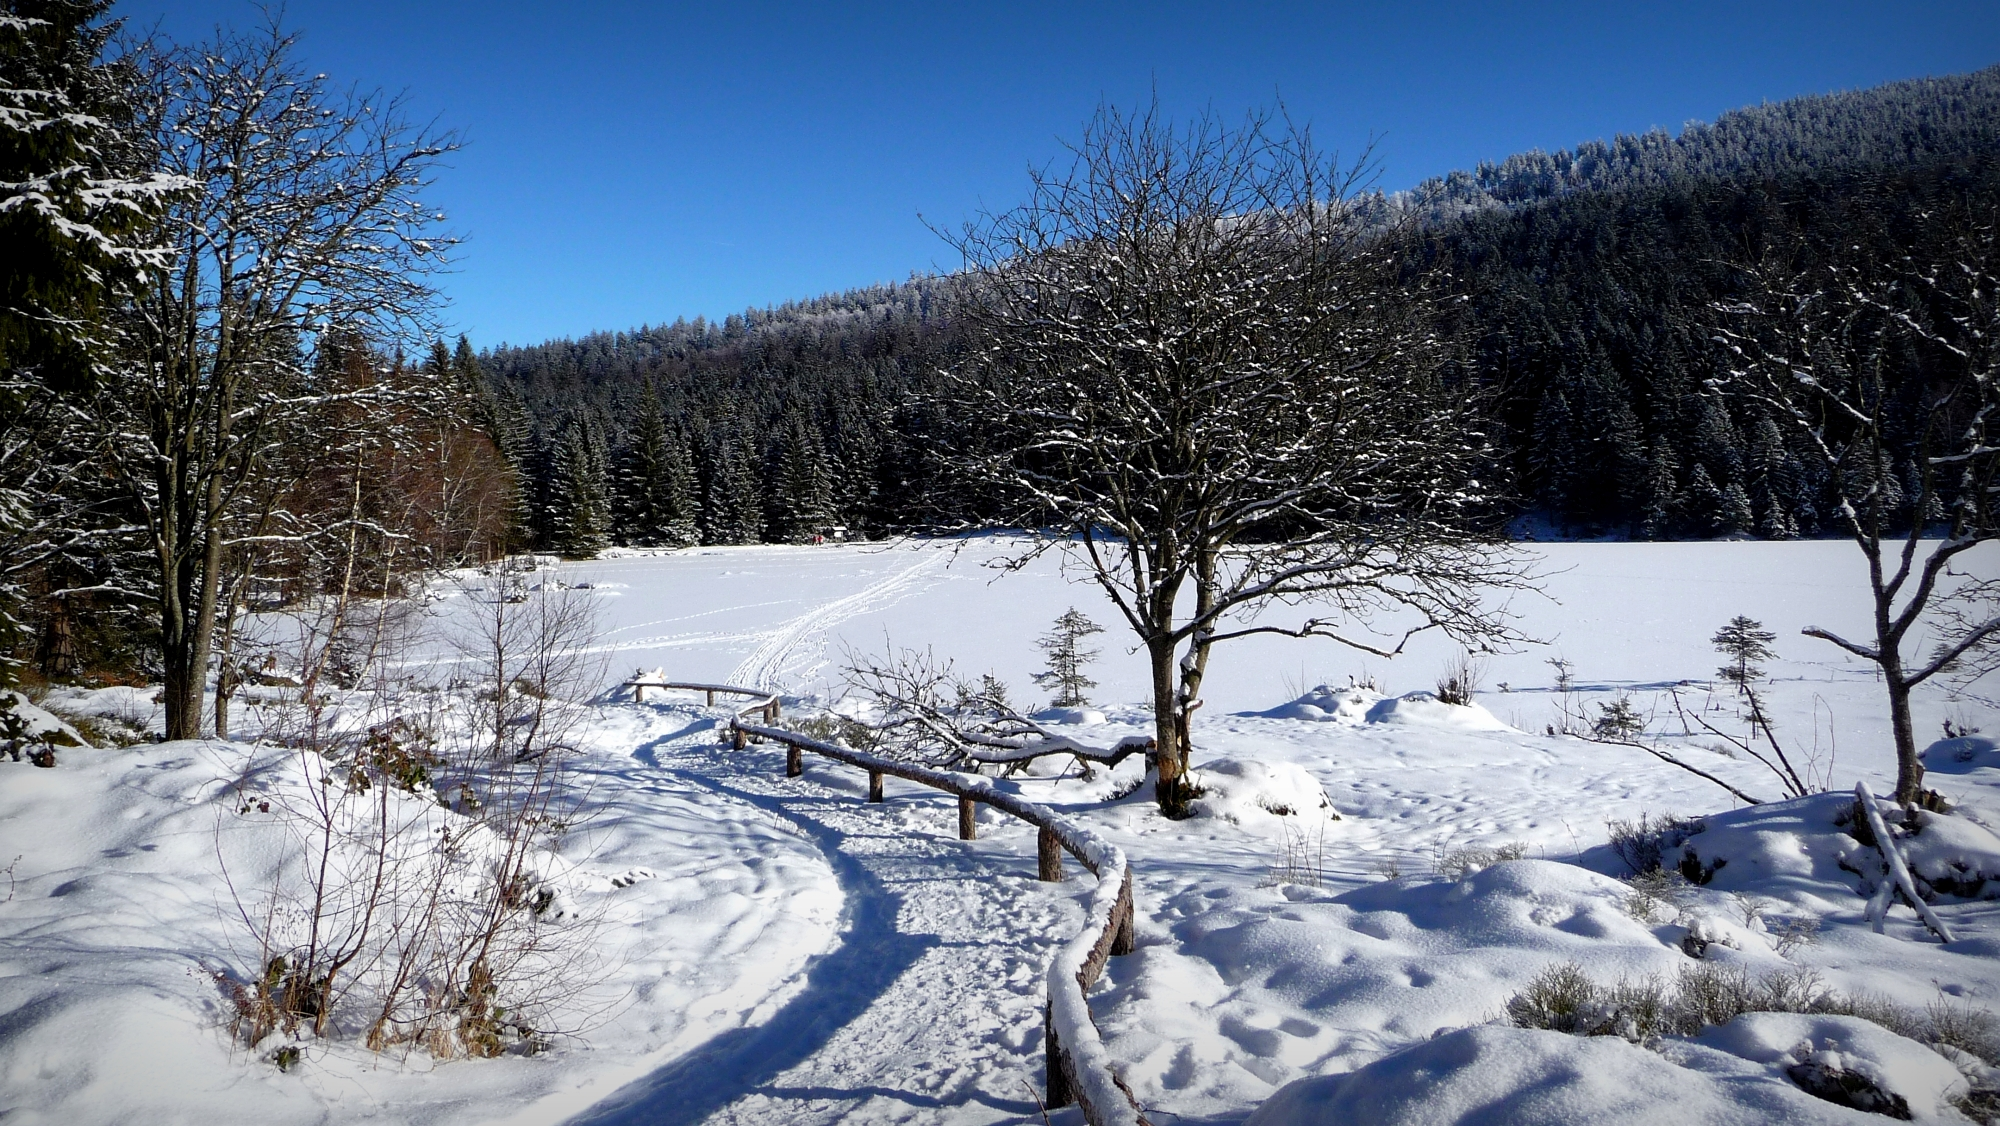 In the Bavarian Forest, Germany